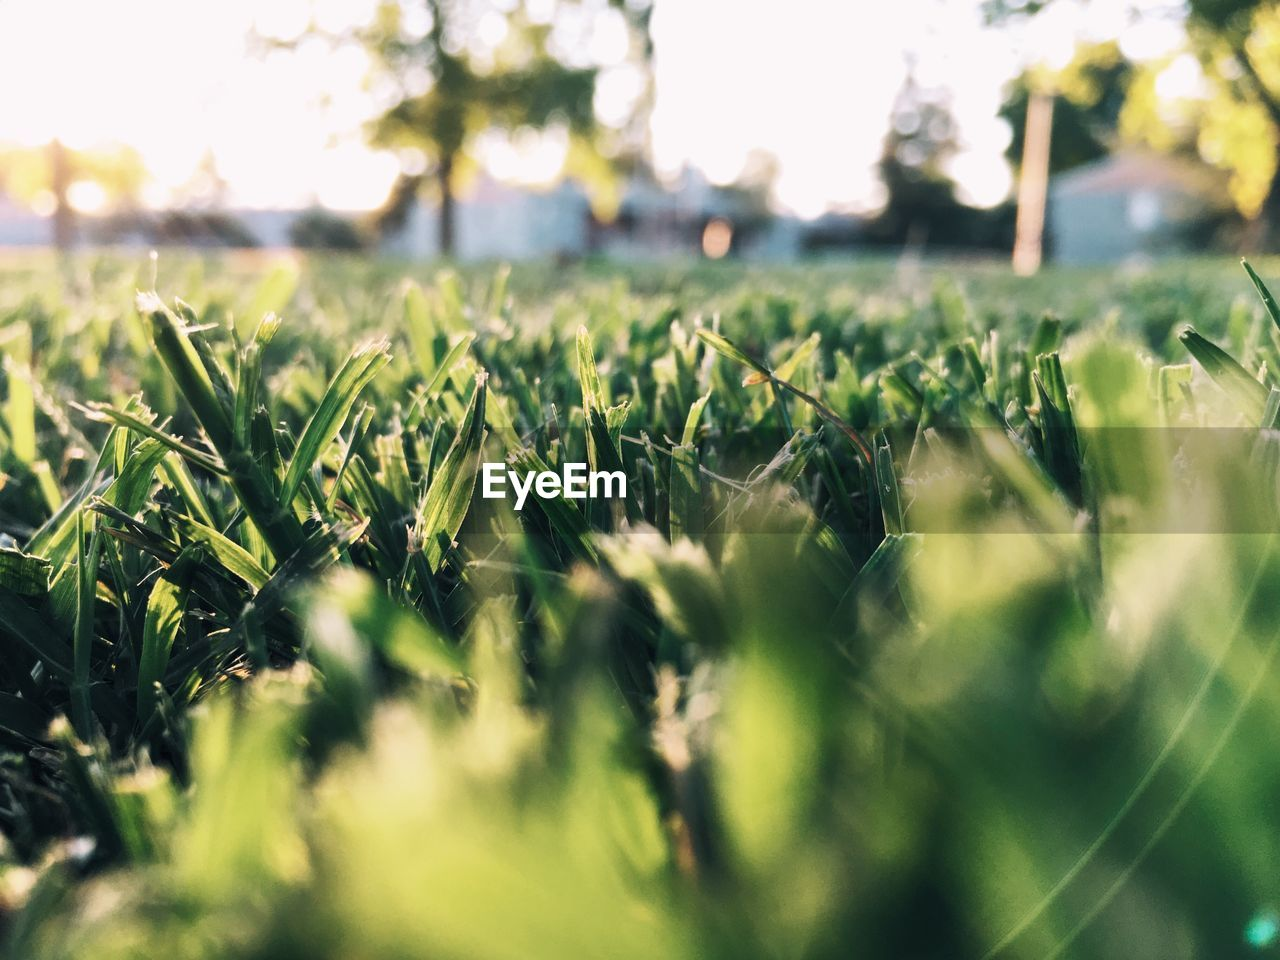 selective focus, growth, nature, grass, no people, field, plant, green color, outdoors, day, close-up, beauty in nature, freshness